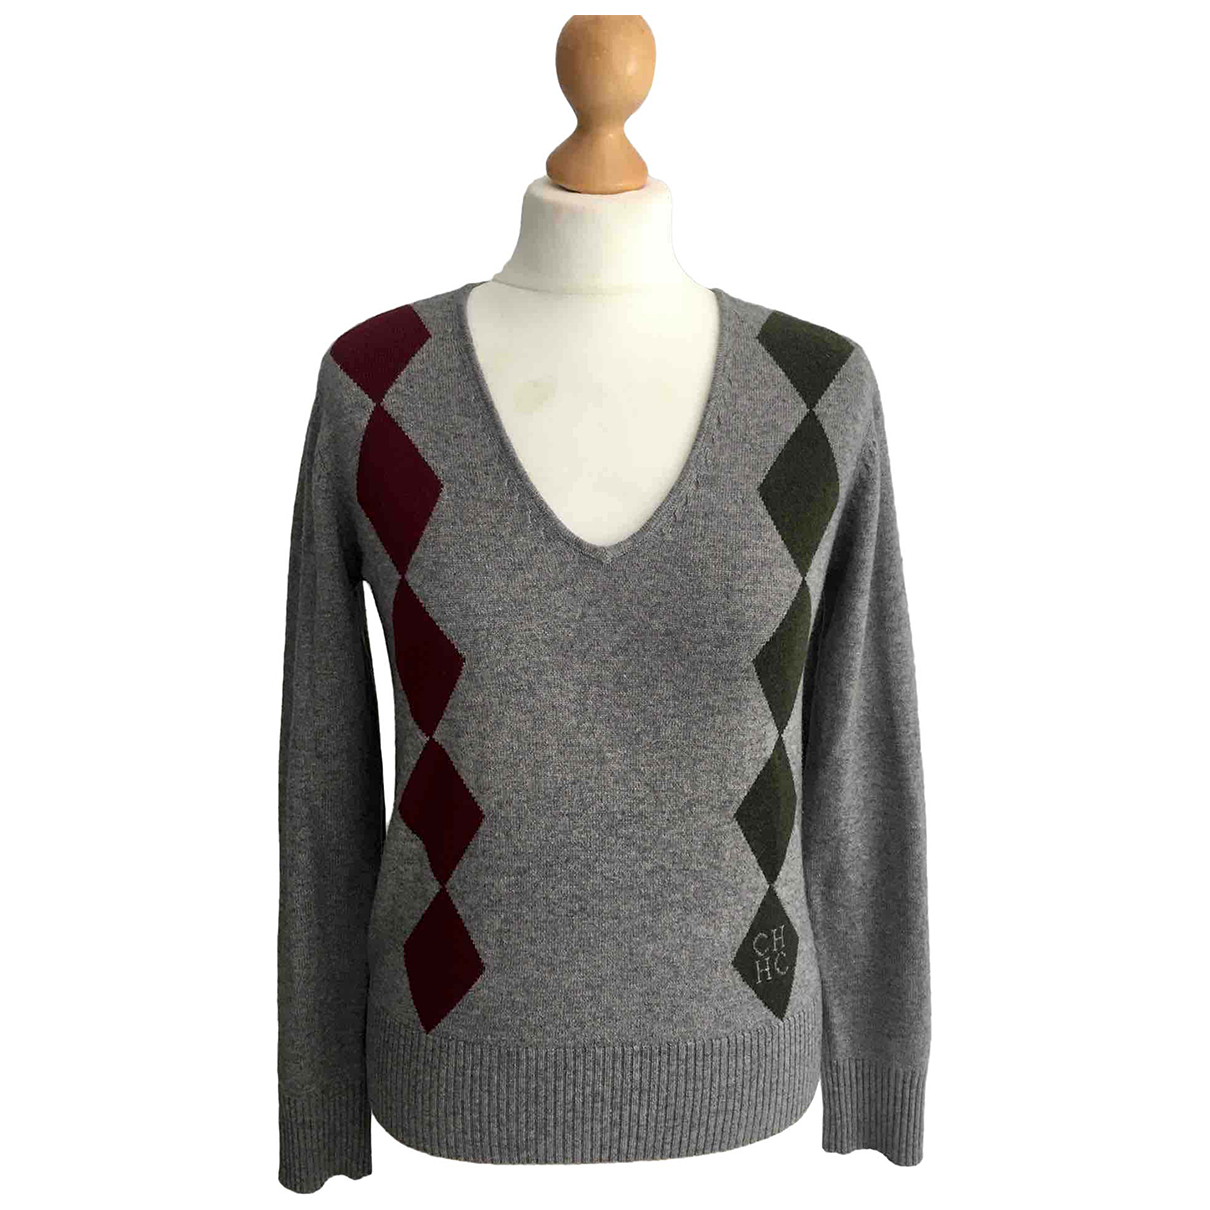 Carolina Herrera N Grey Wool Knitwear for Women S International